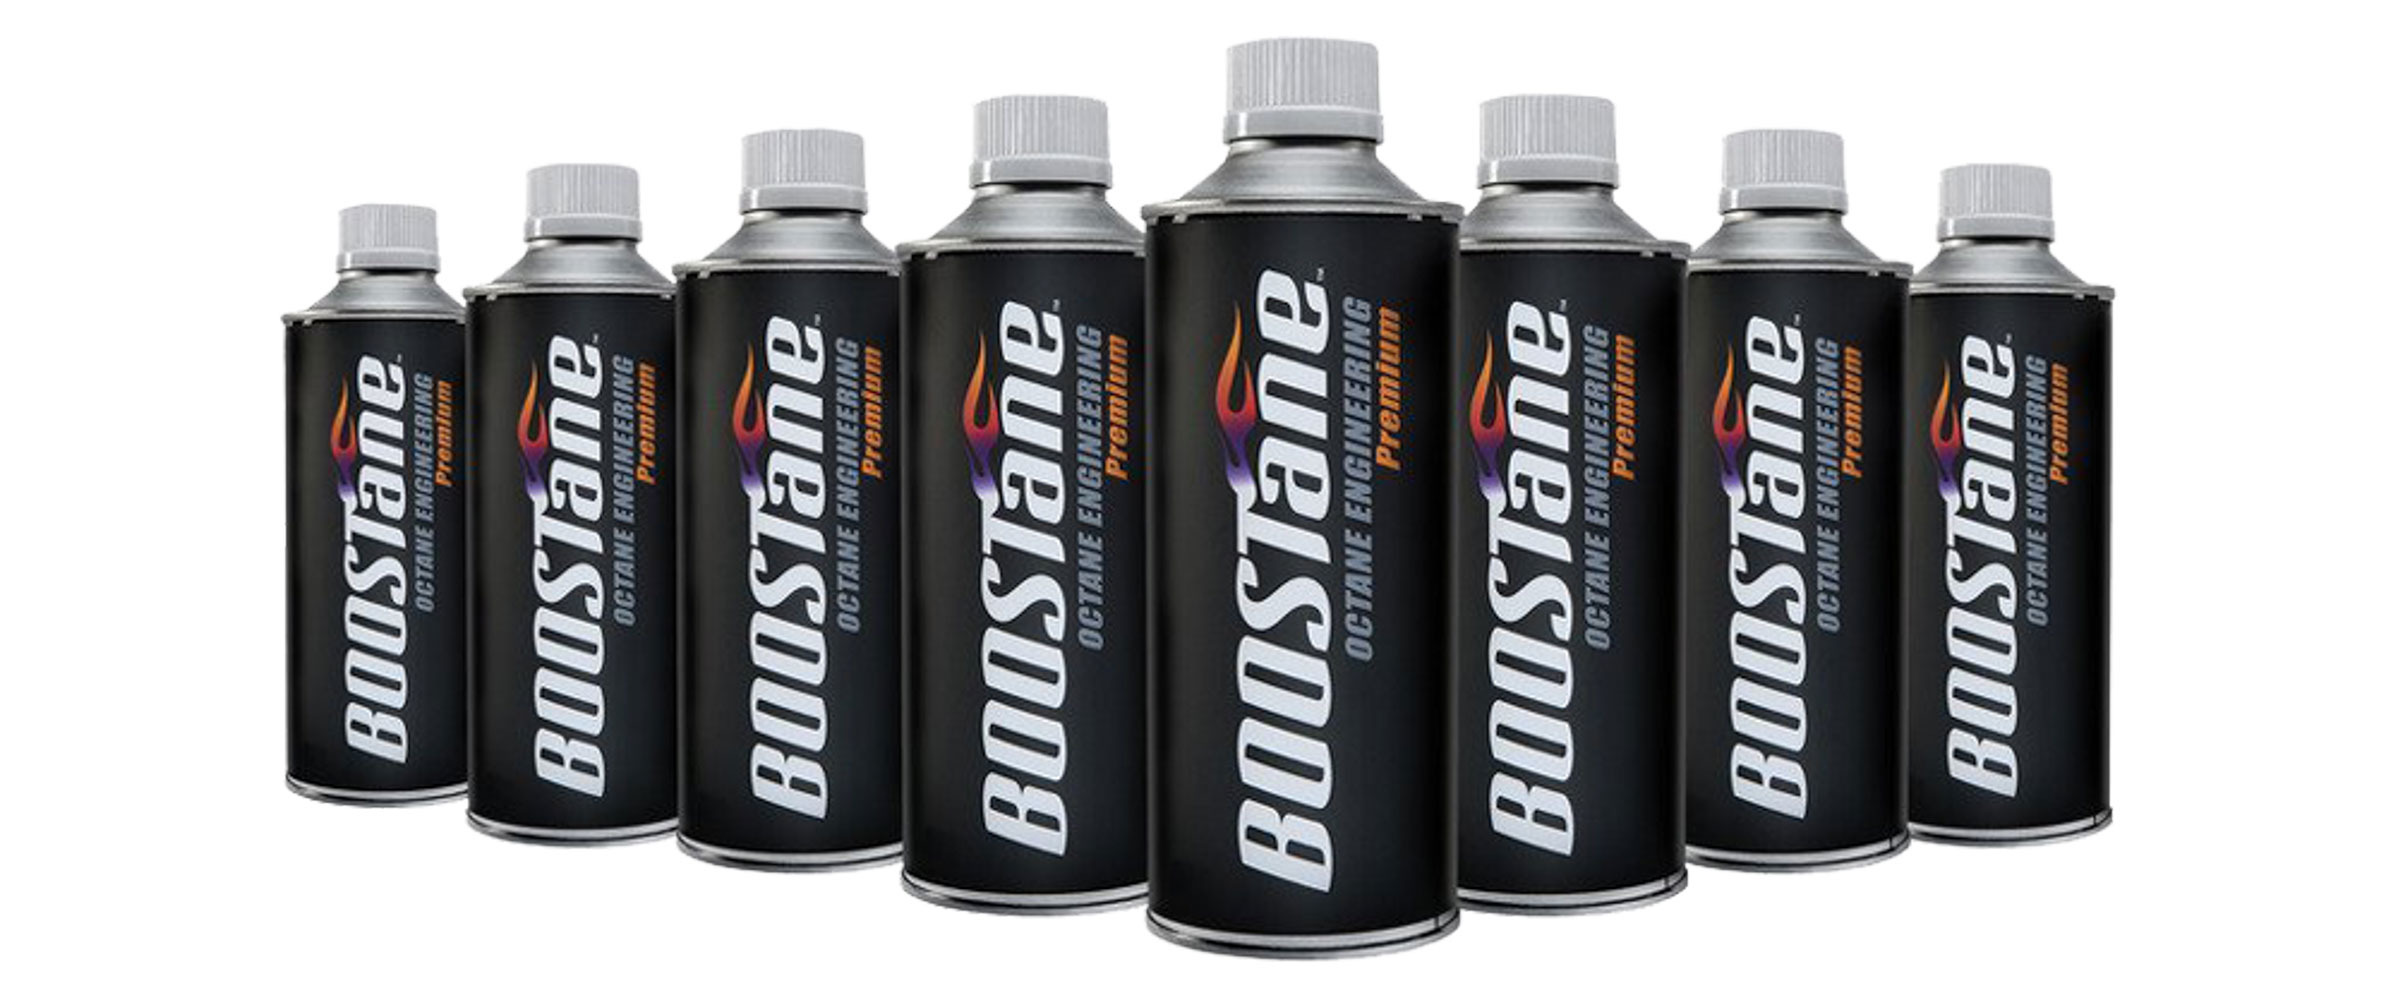 Premium-Octane Boost Case 8 x 16oz Bottles